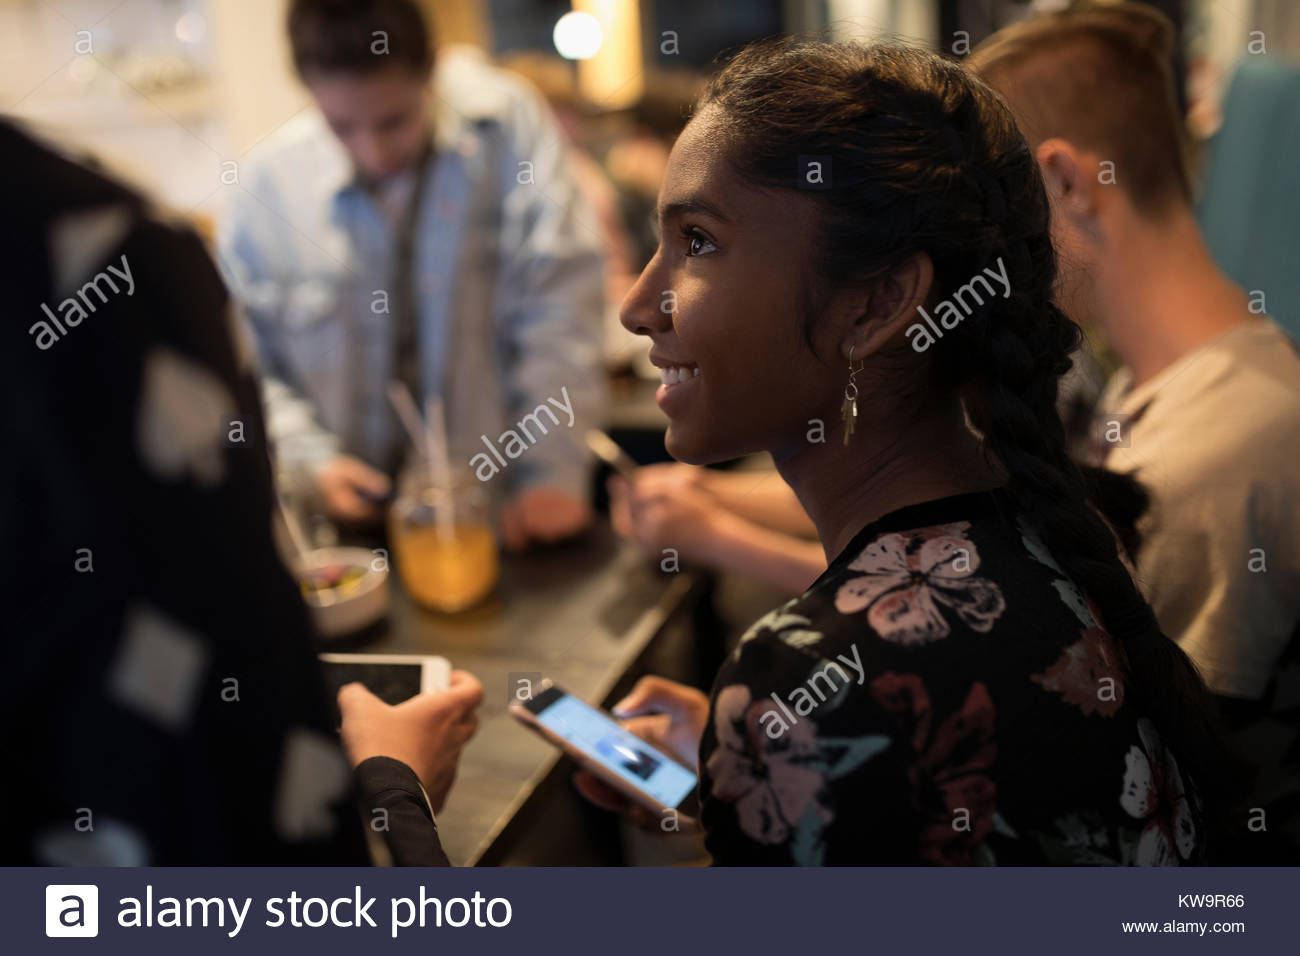 Smiling Indian tween girl texting with smart phone,hanging out at cafe table - Stock Image